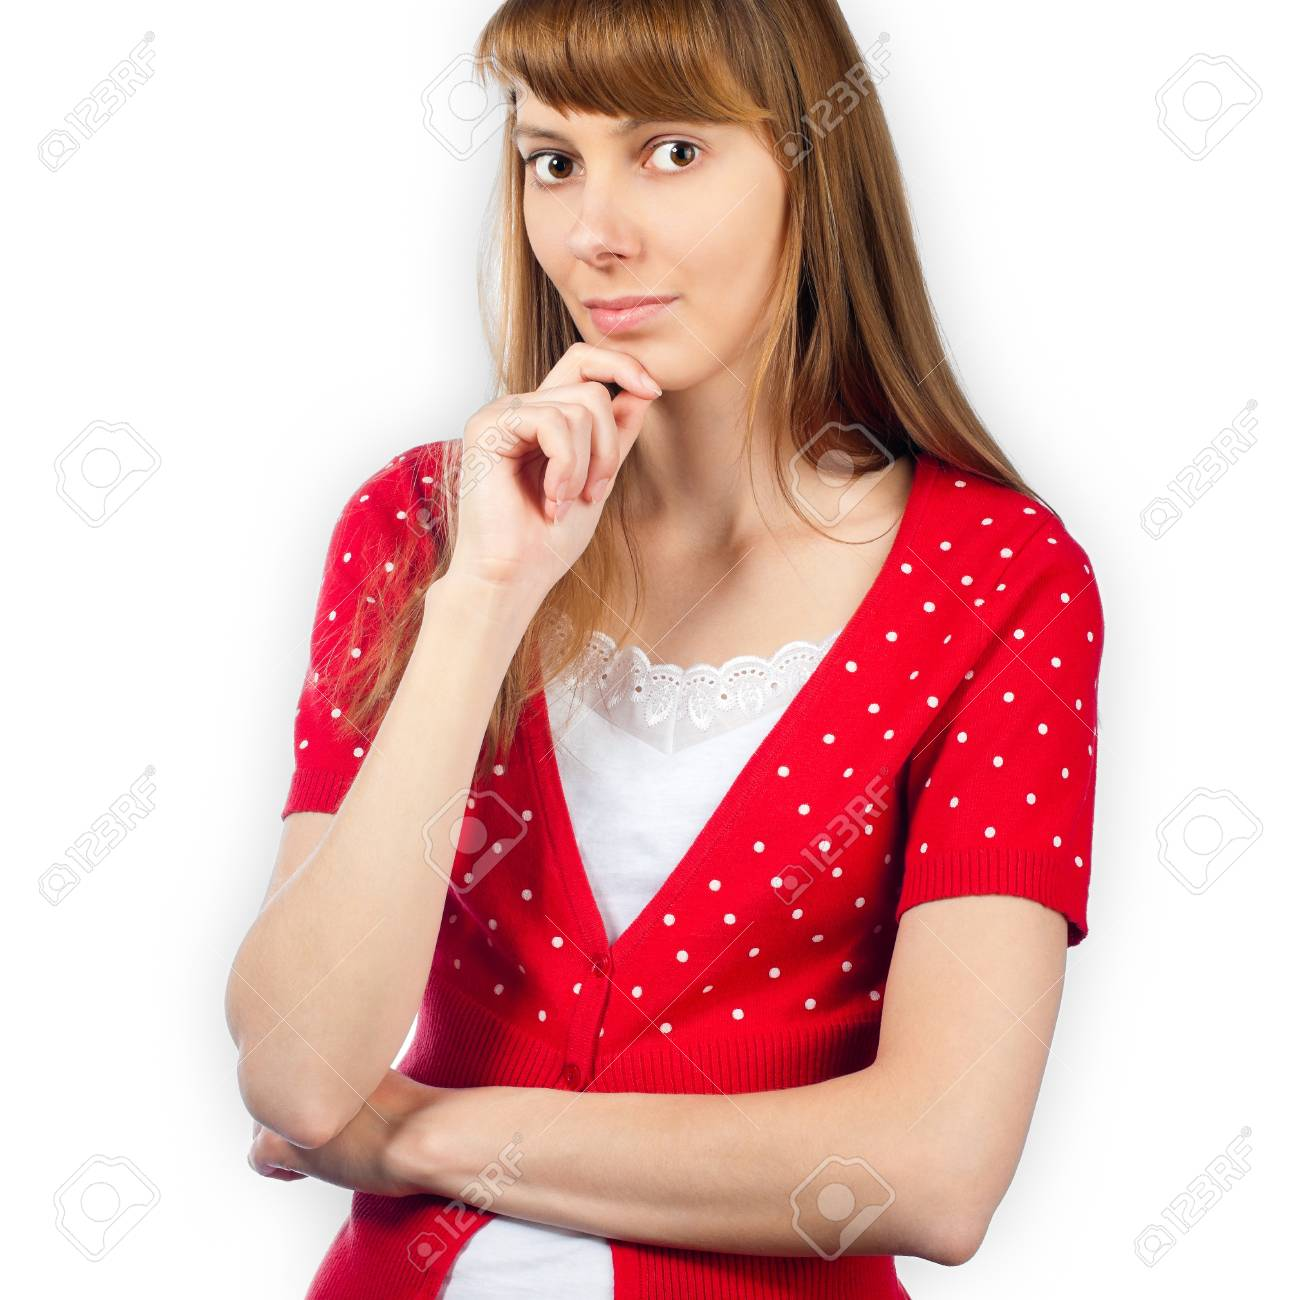 positive and beautiful young woman thinking, hand under her chin, looking into the camera. Isolated on white background. Stock Photo - 14848591